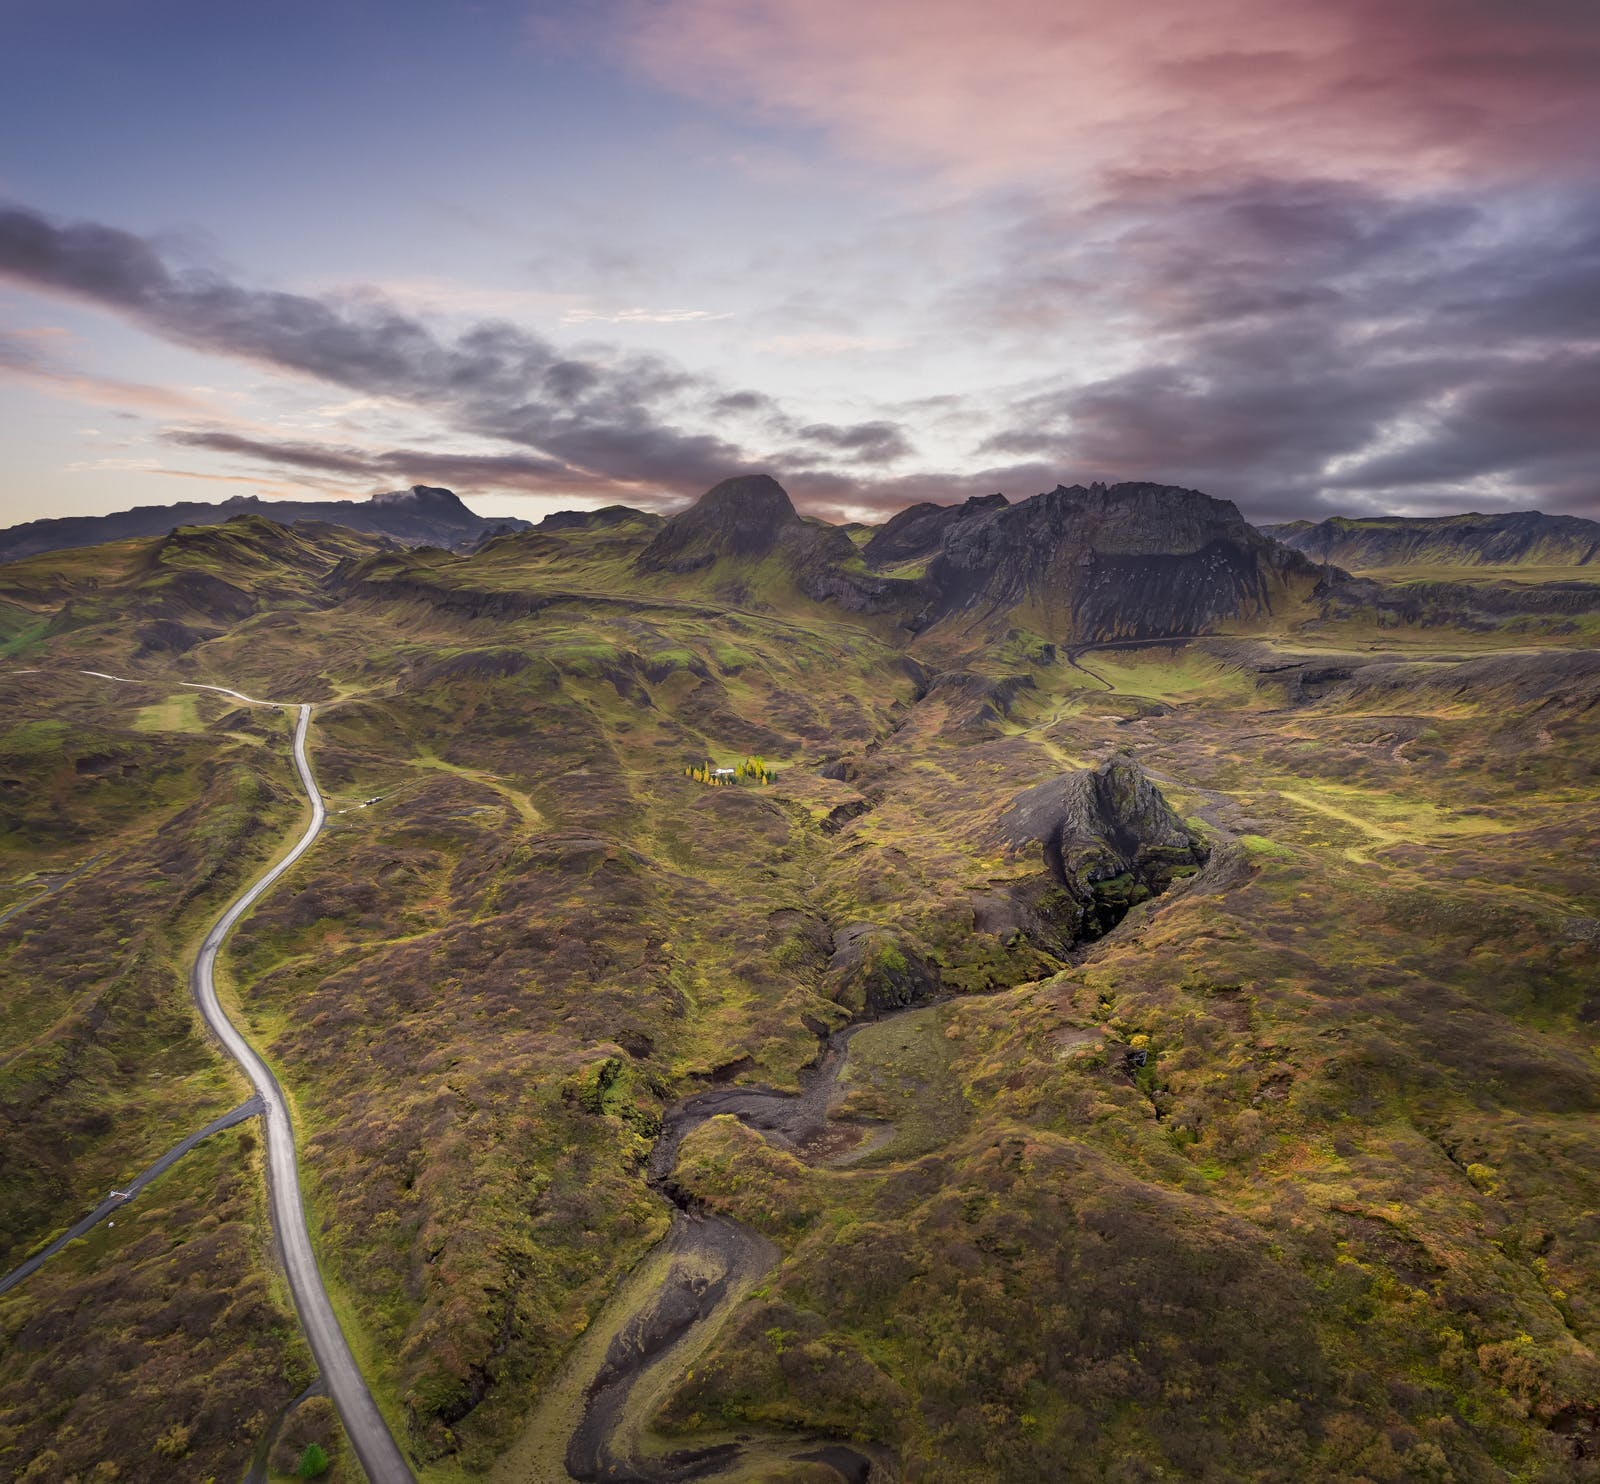 Lava fields and mountains in Iceland